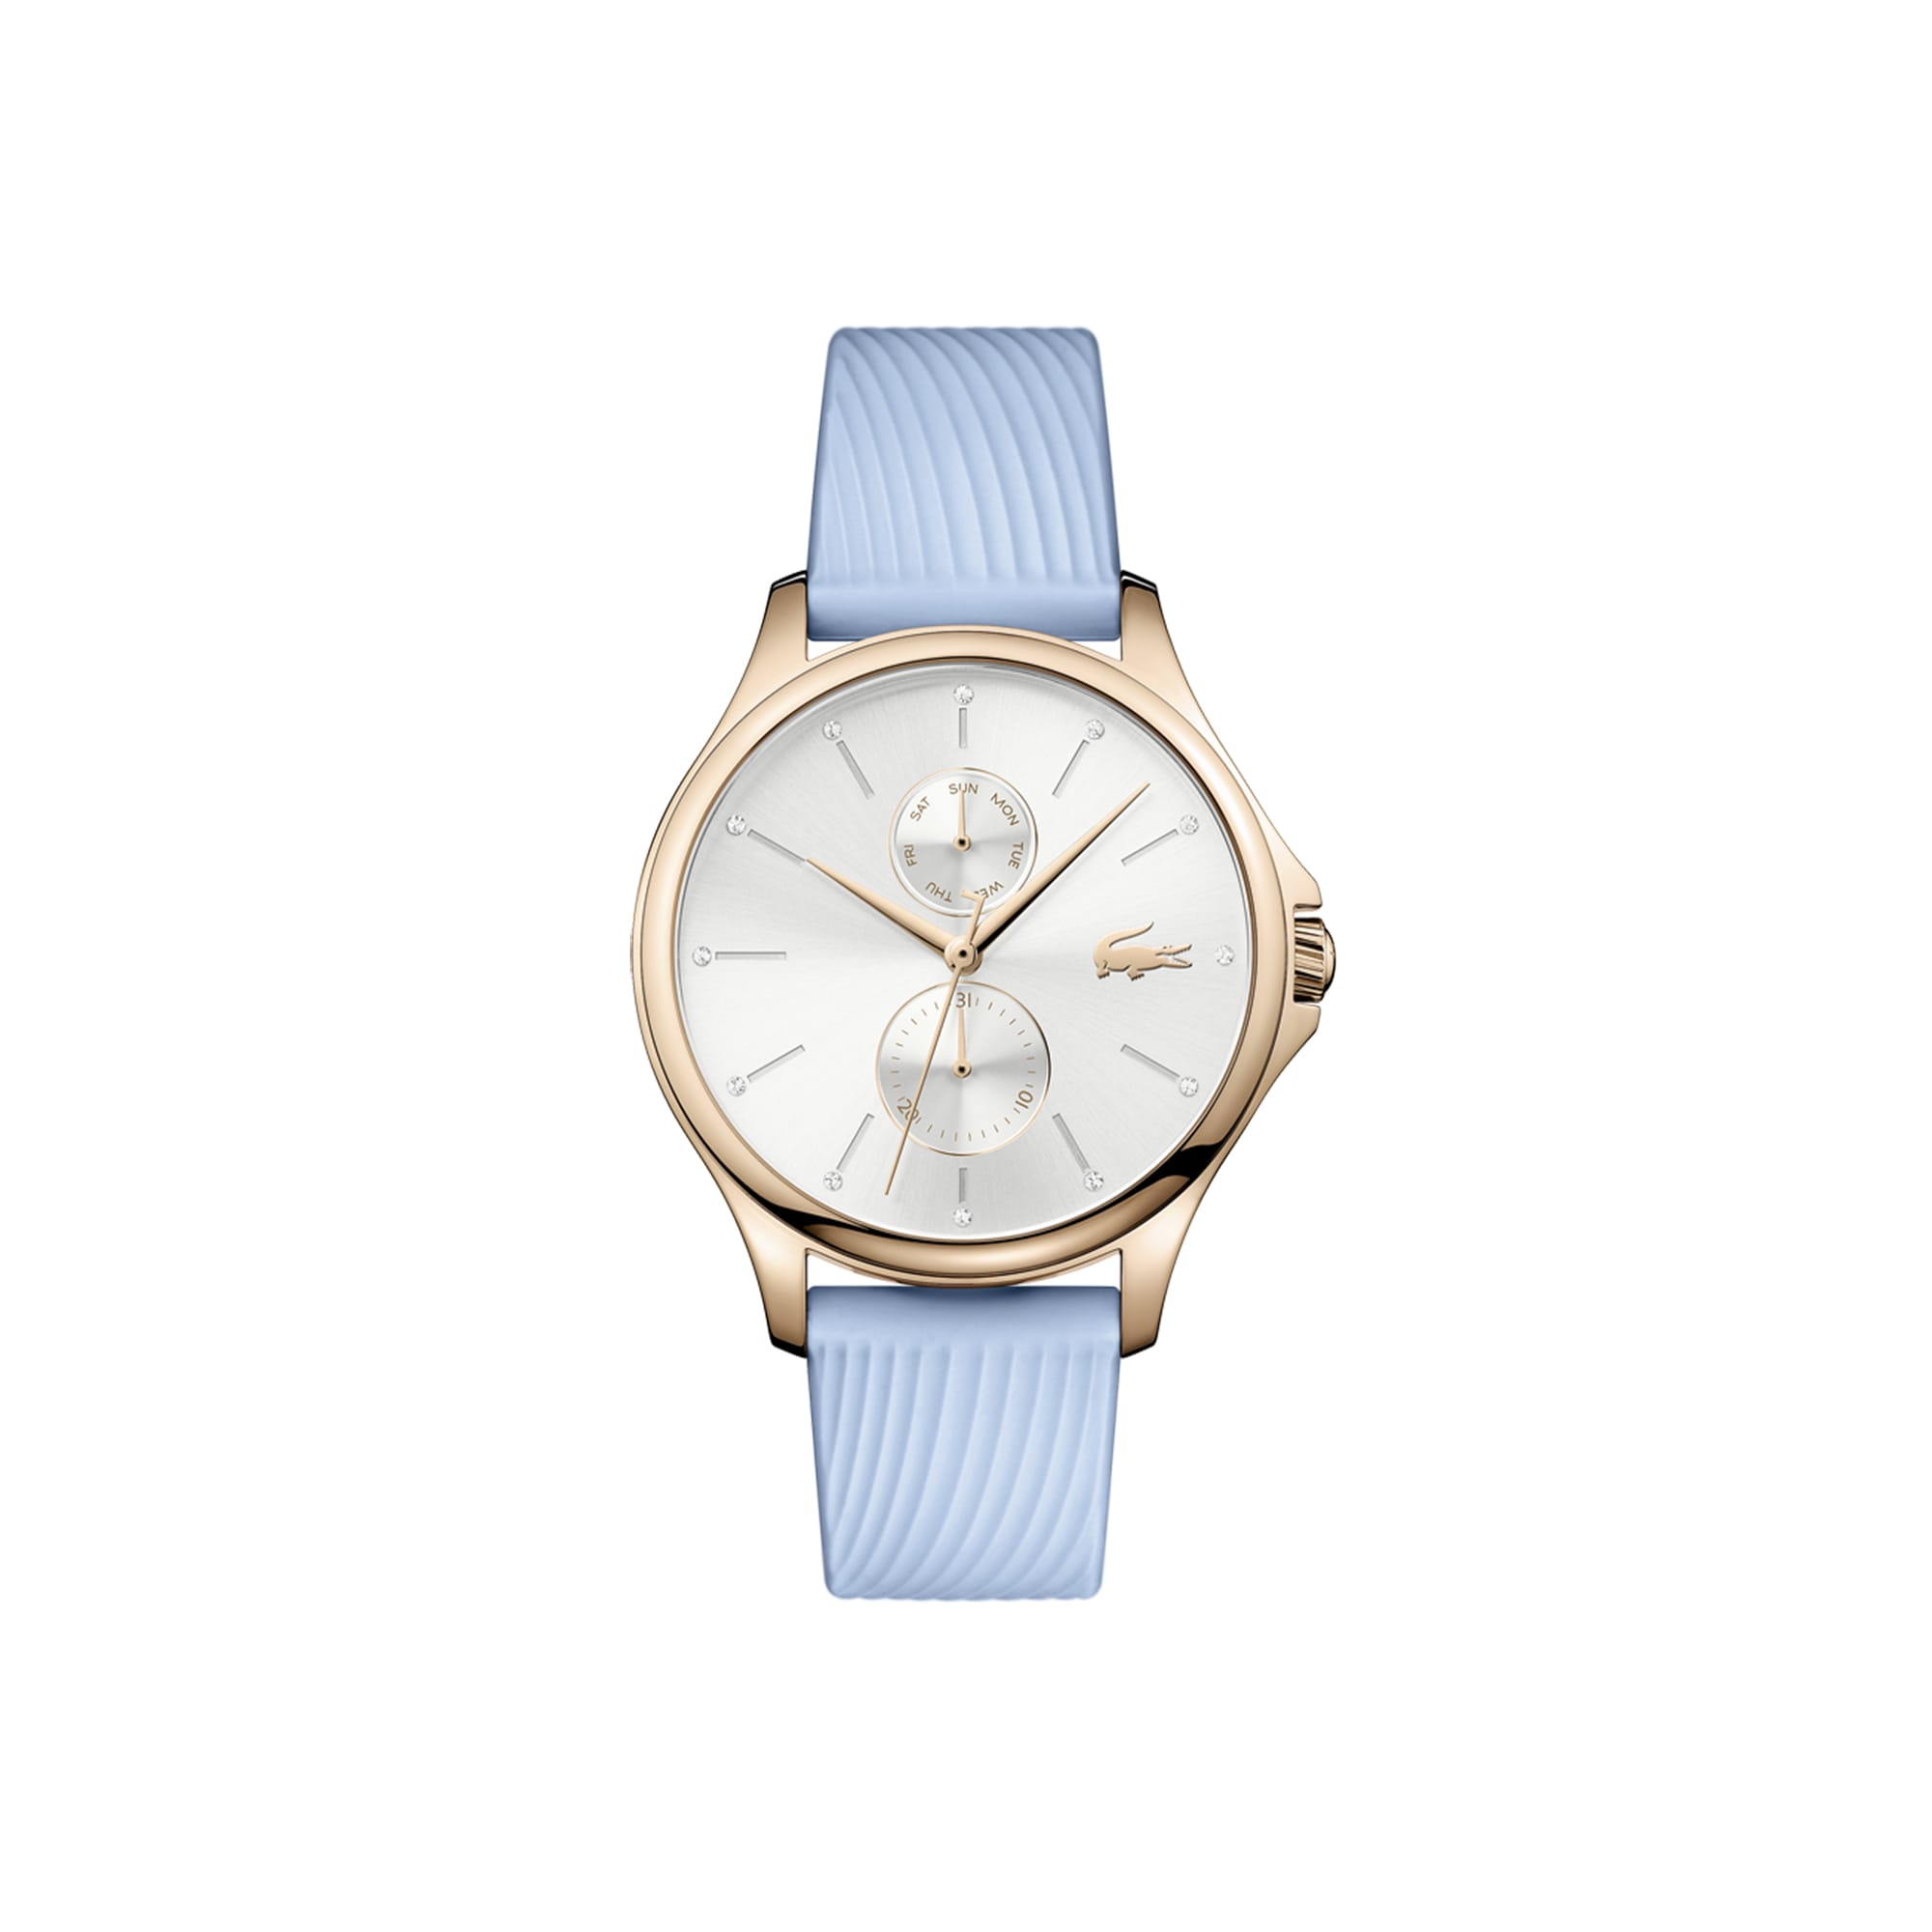 Women's Kea Multifunctions Watch with Blue Silicone Strap